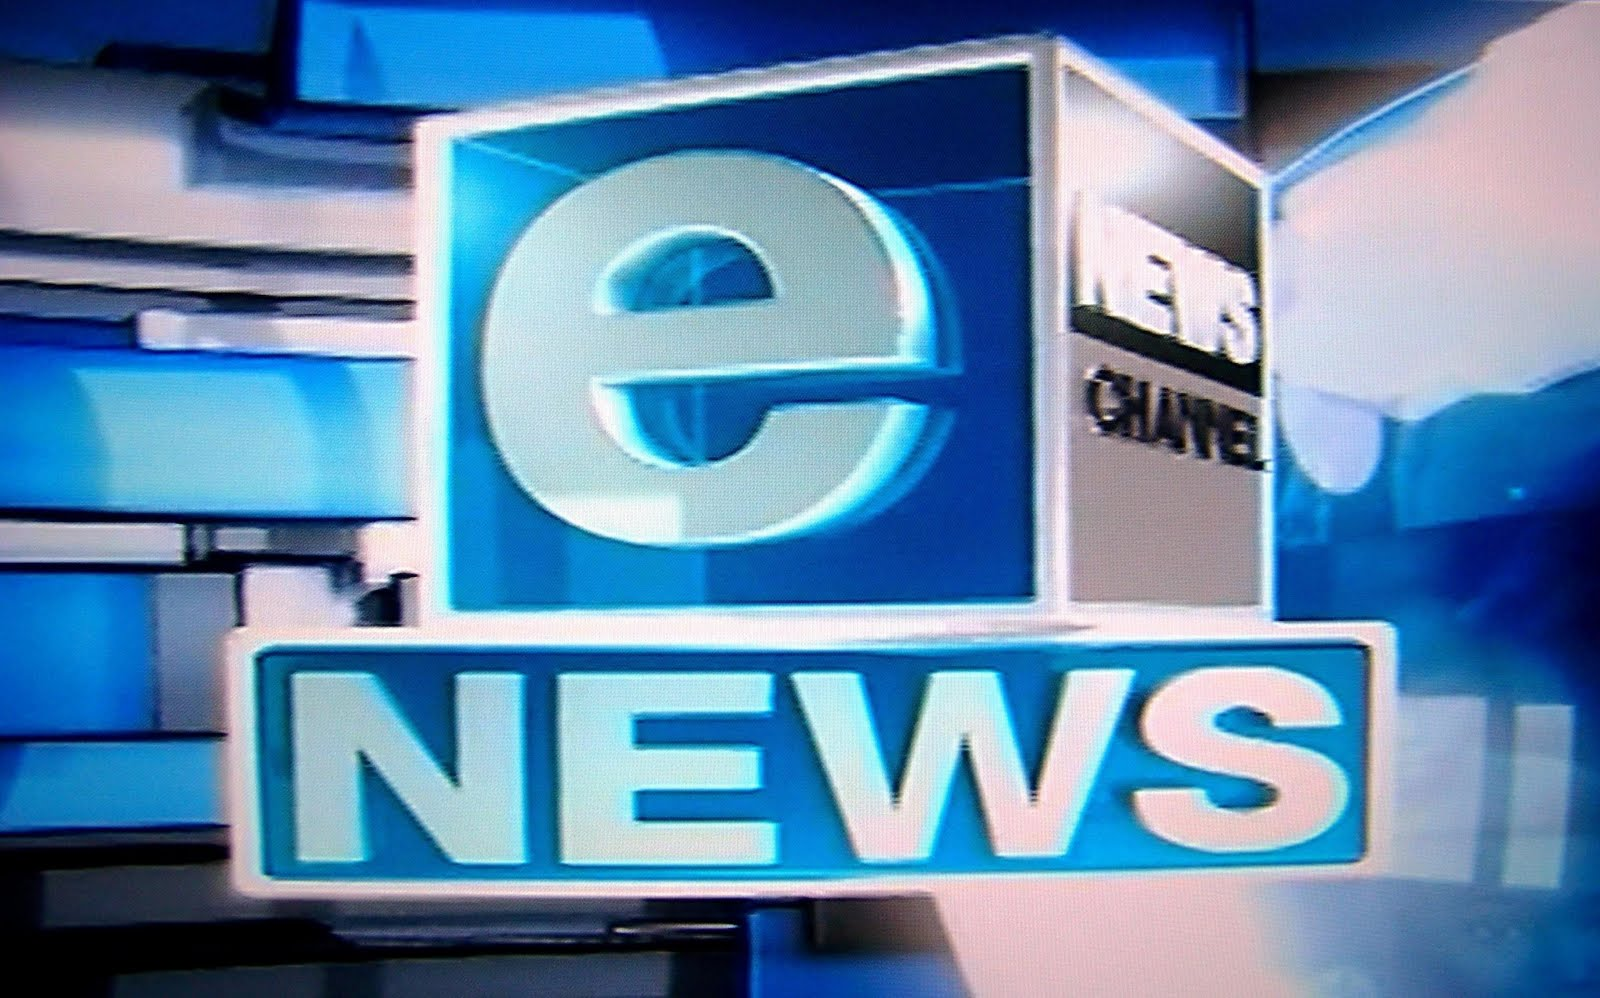 New News Channel : News channel logos newhairstylesformen